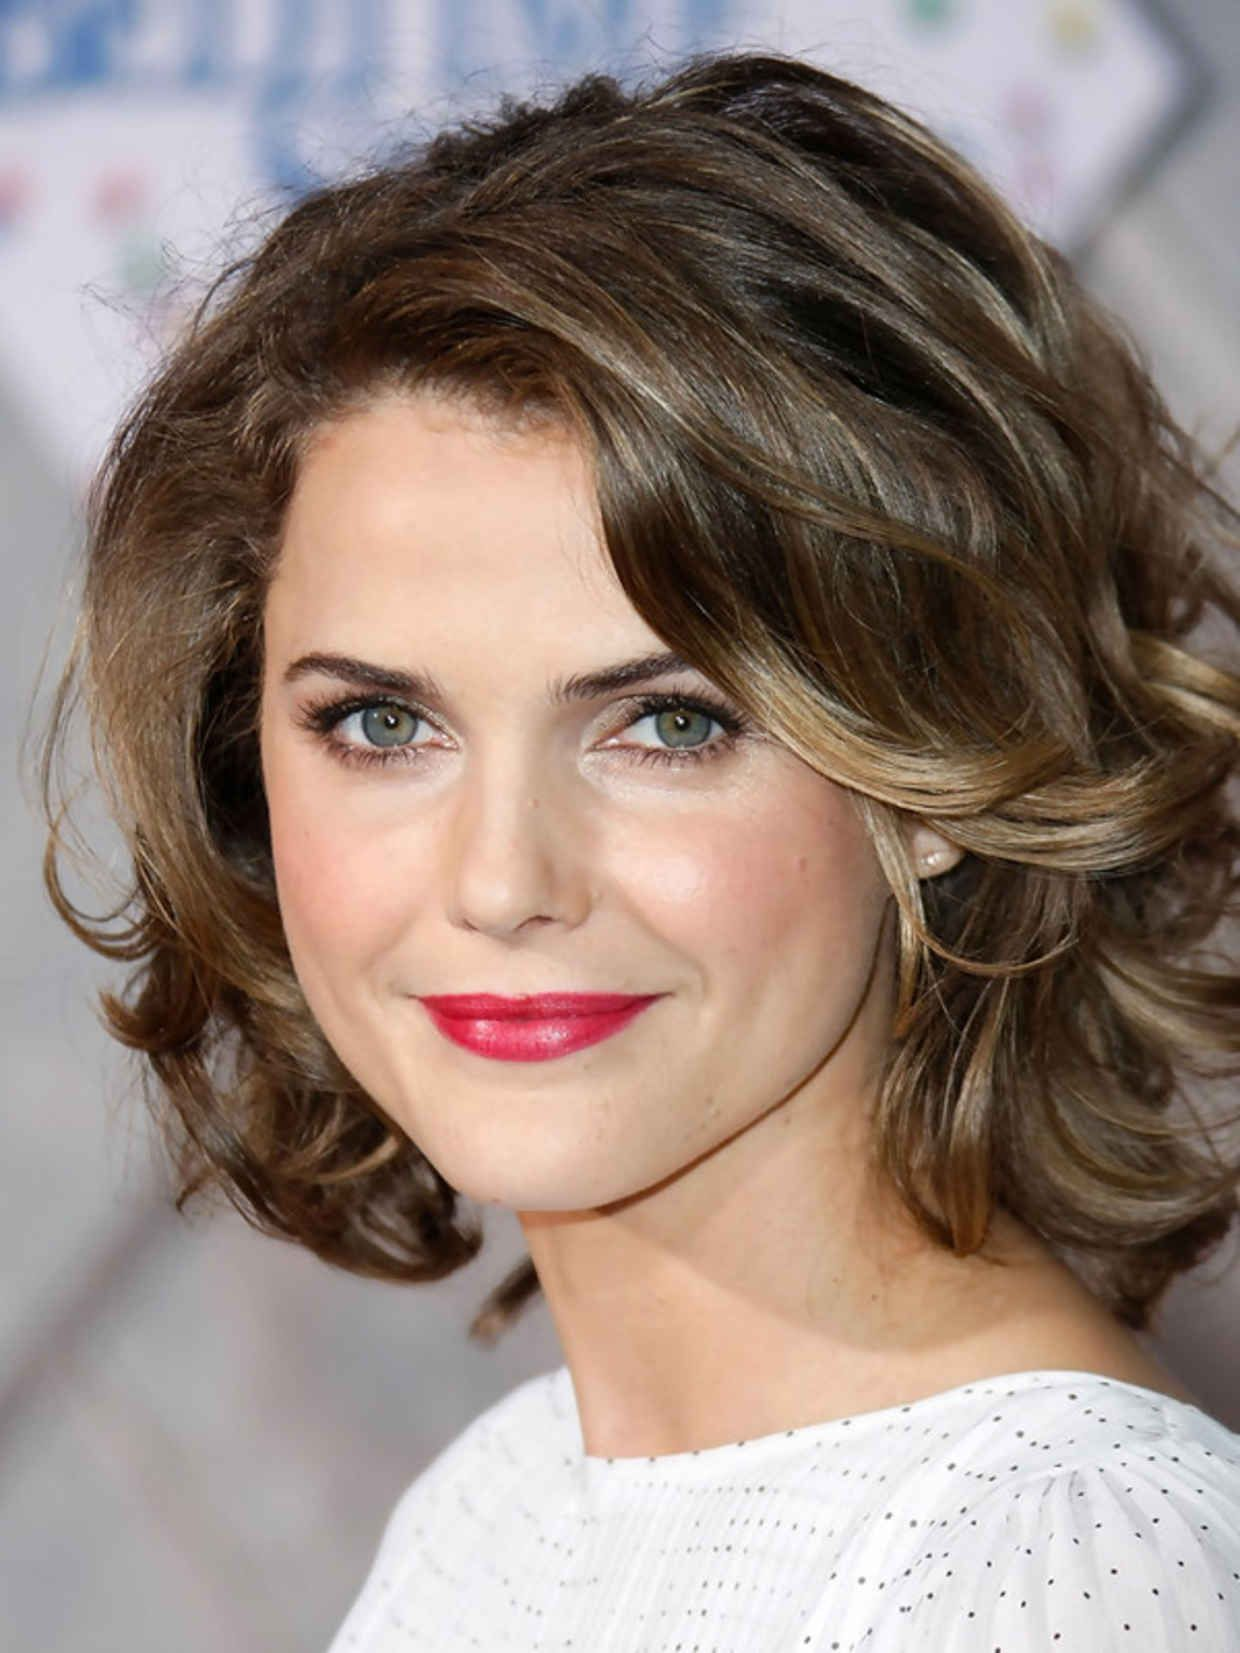 The best cuts for fine frizzy wavy hair keri russell wavy hair